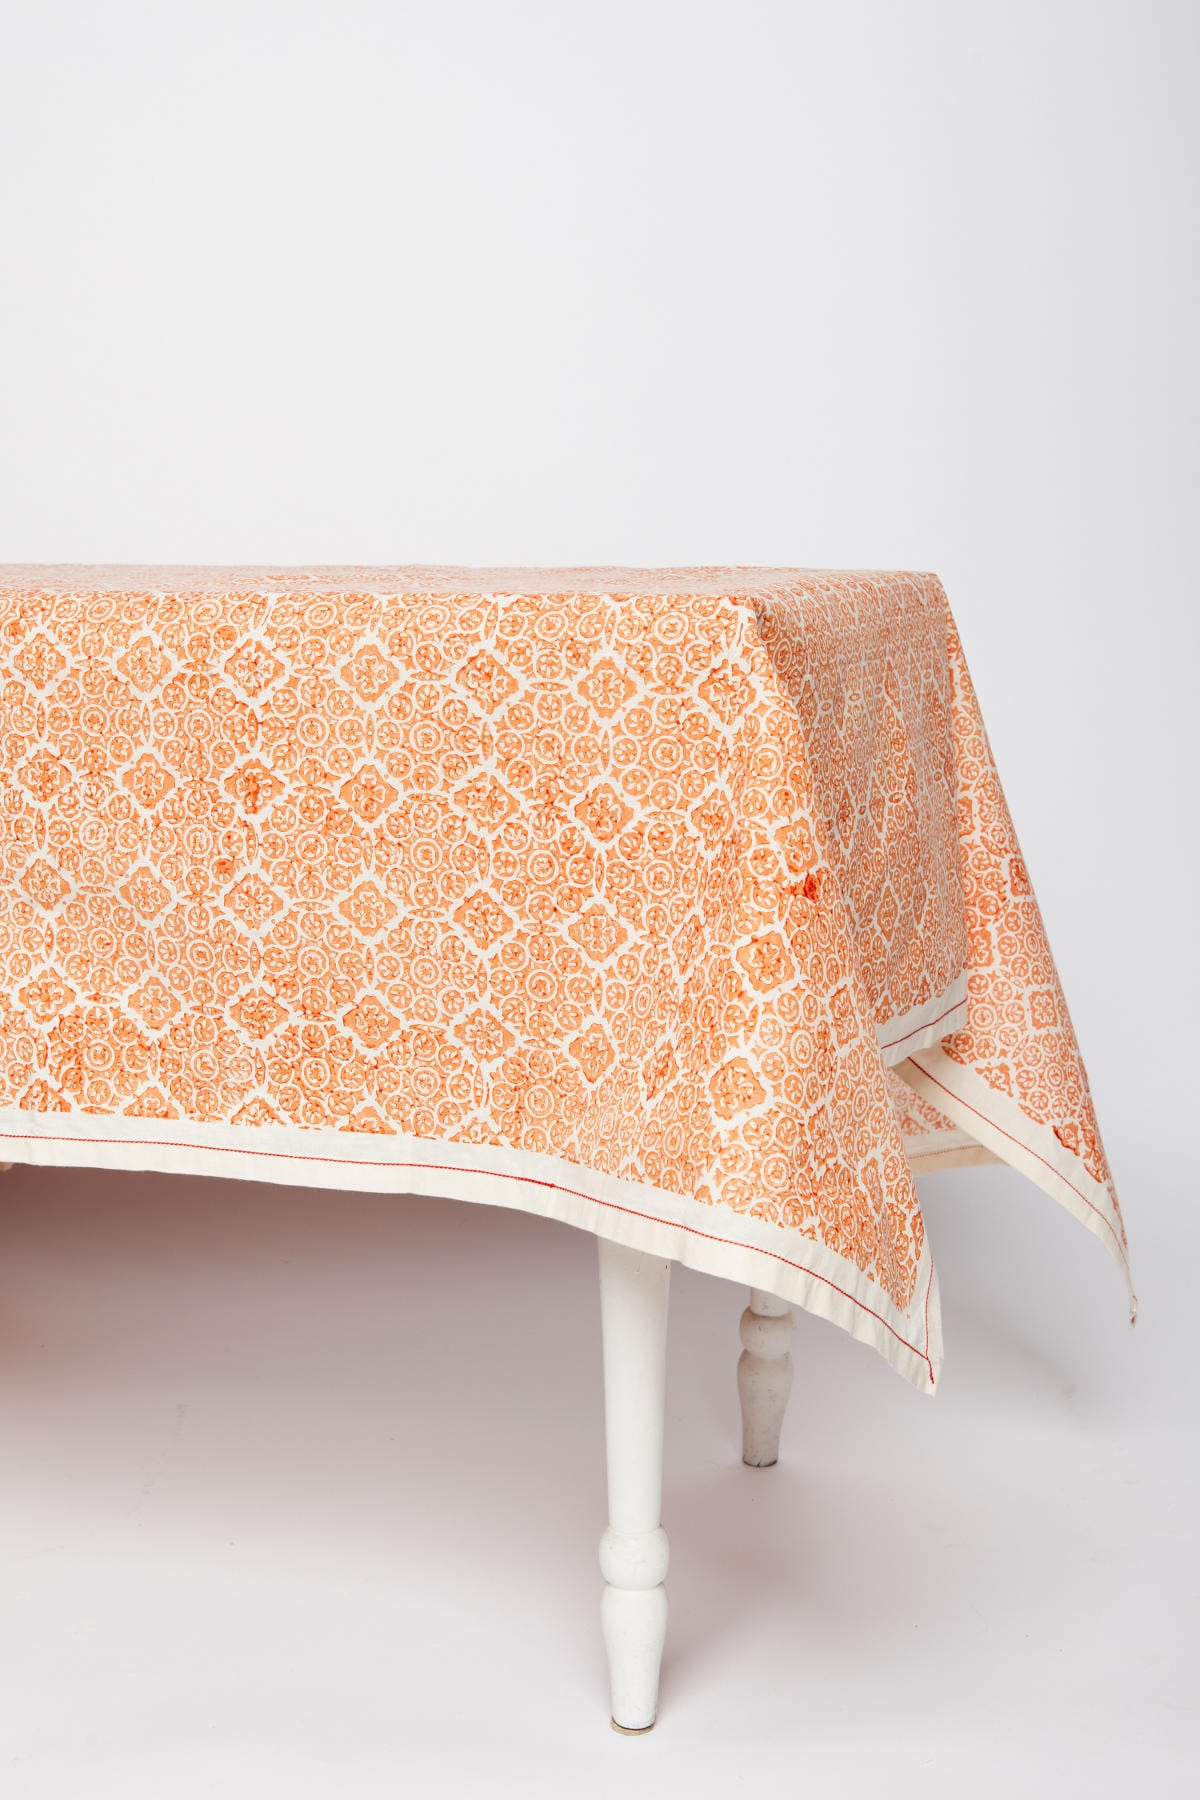 Mosaic Rose Tablecloth Sustainablethreads